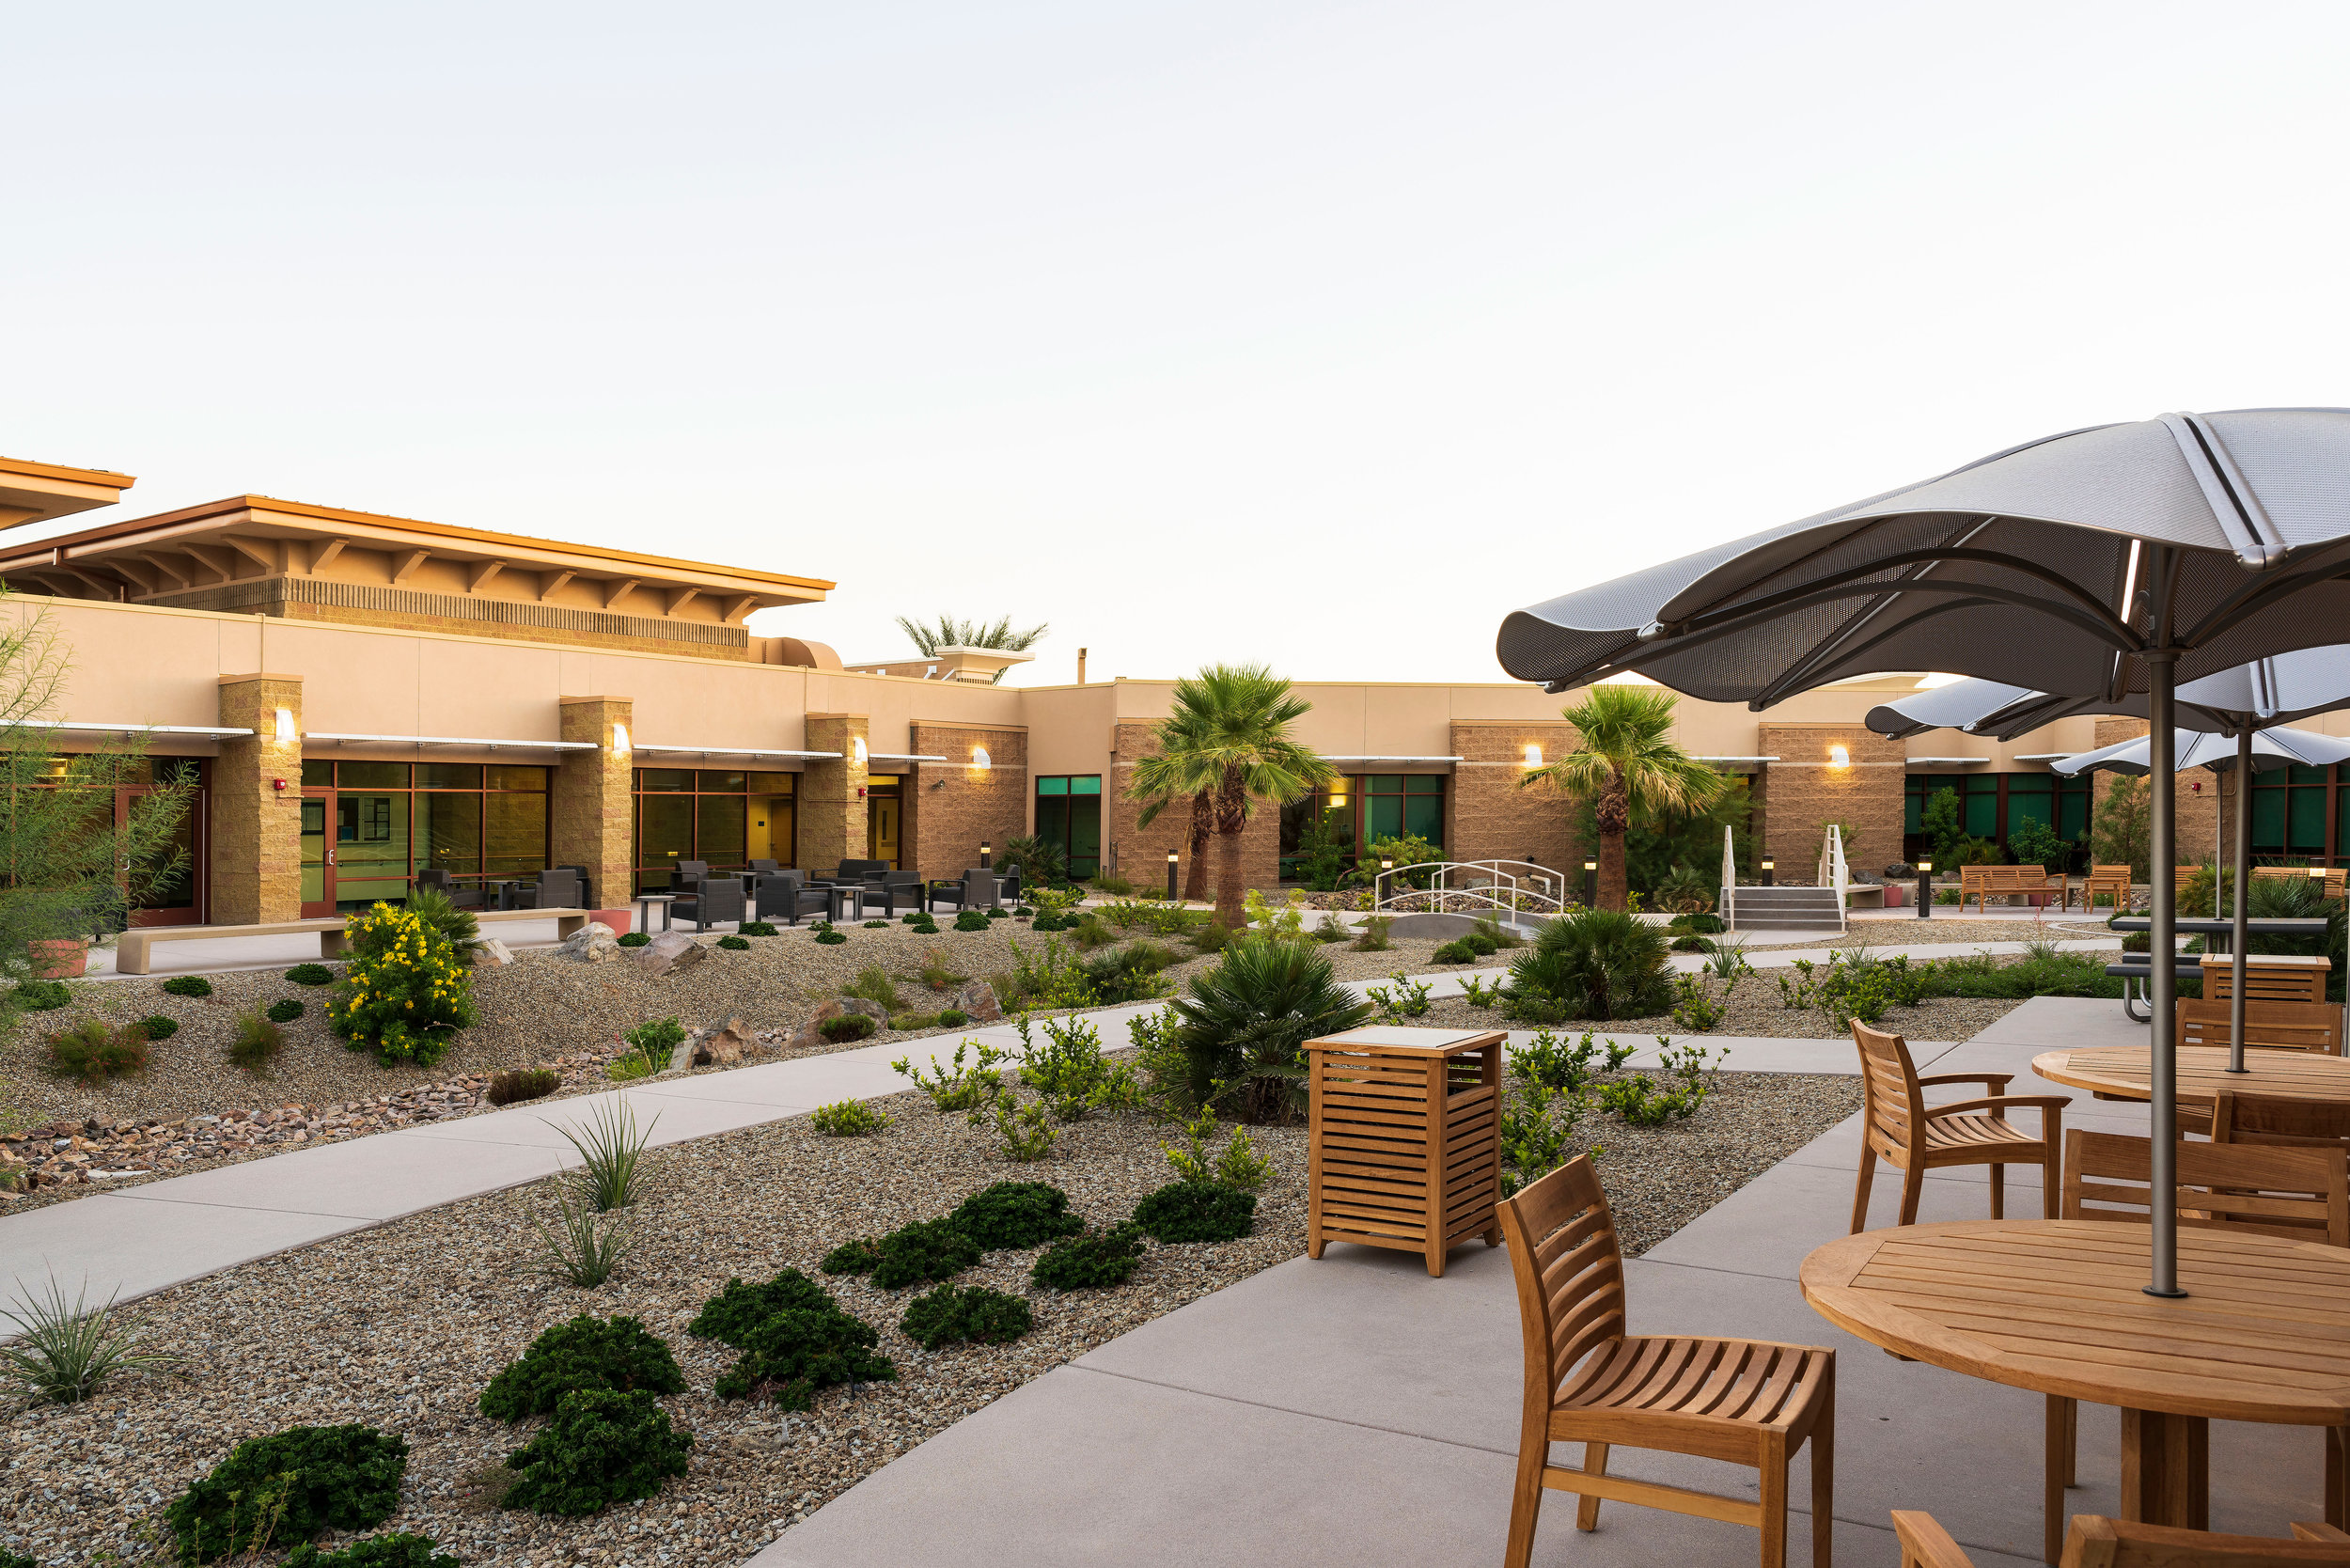 Rancho-Courtyard-1.jpg